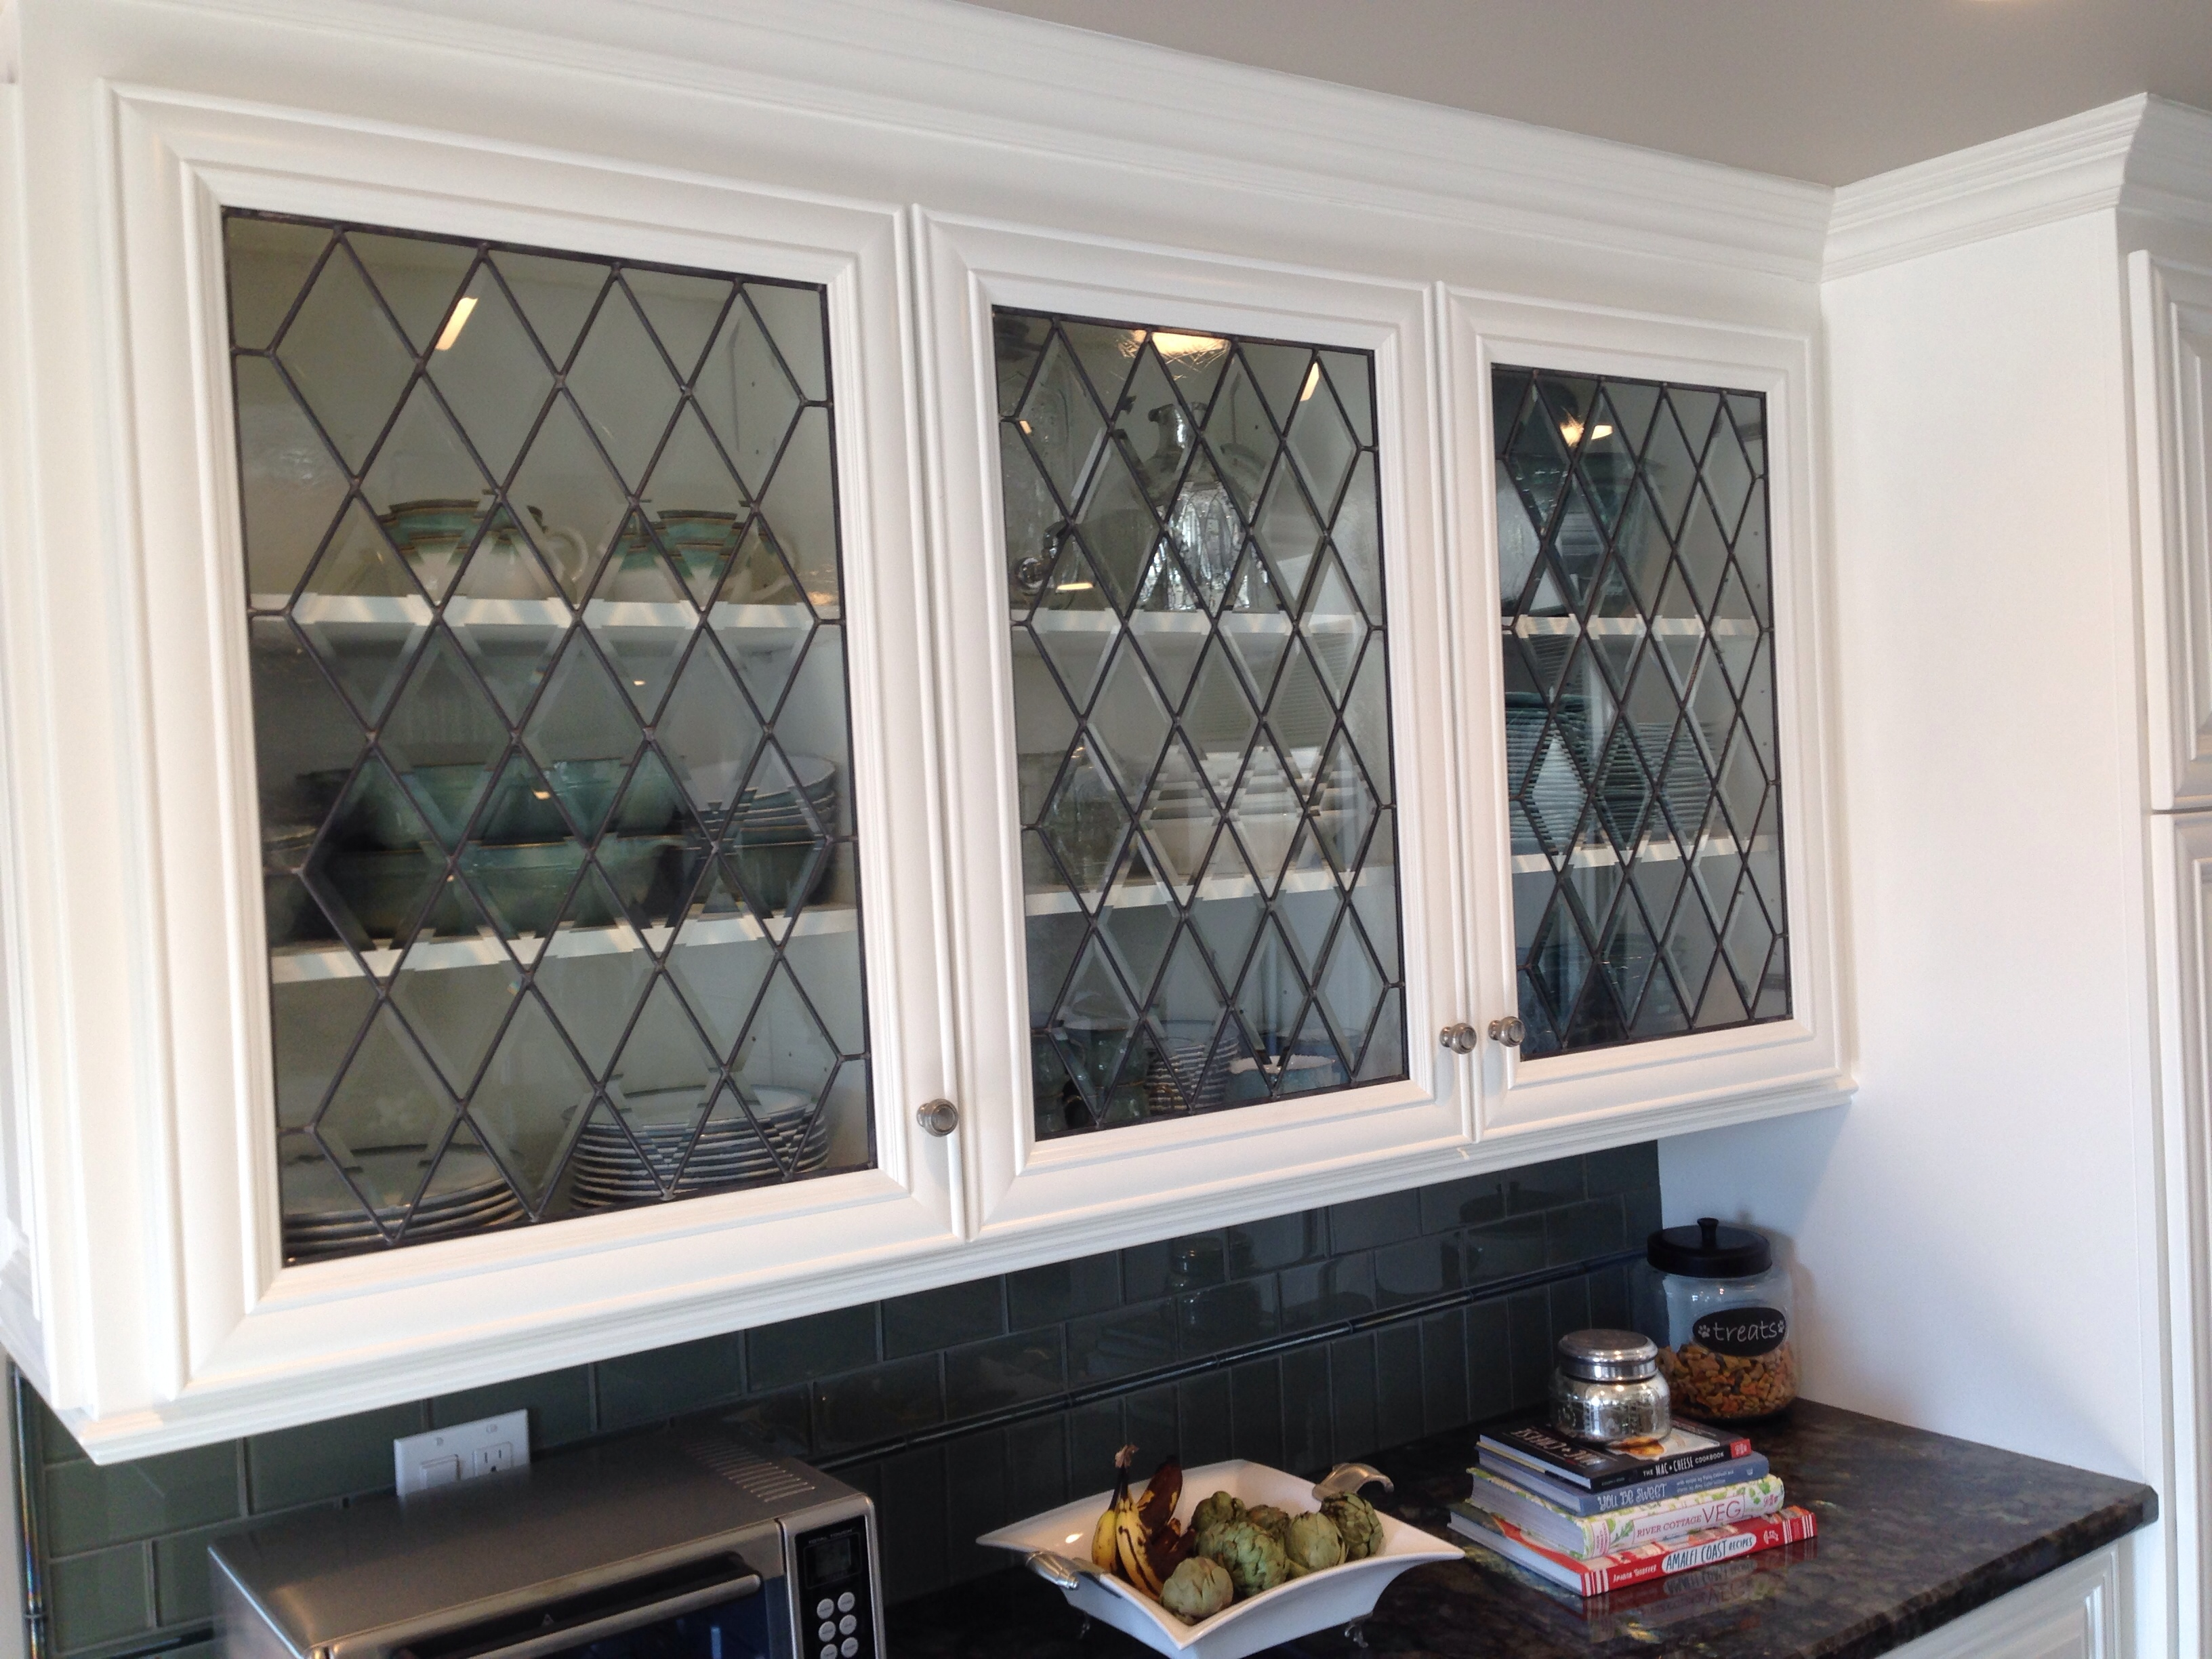 Kitchen Cabinet Doors With Diamond Bevels Architectural Stained Glass